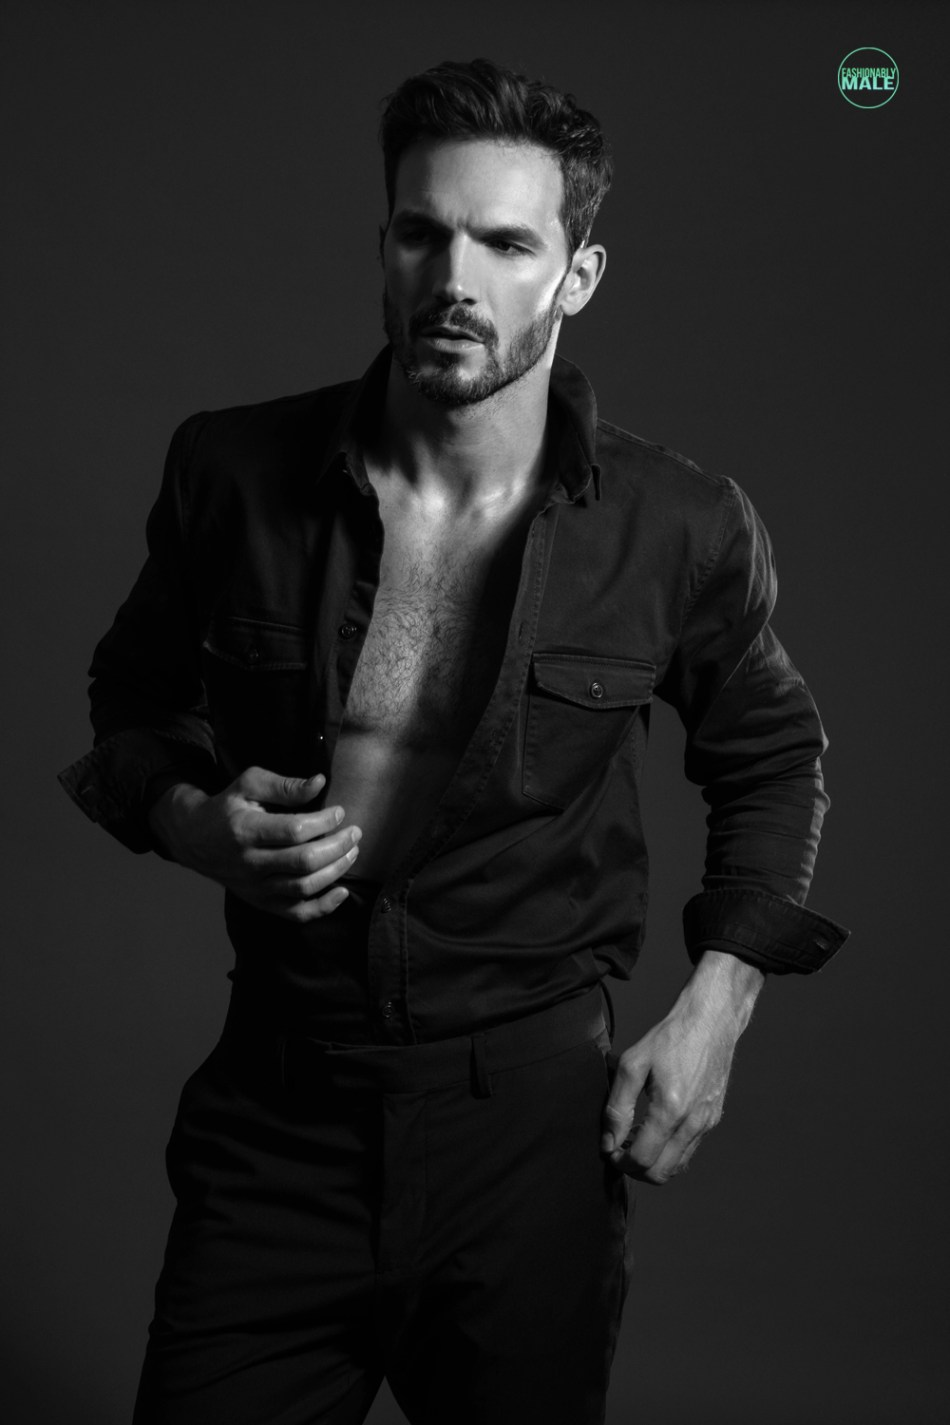 Adam Cowie by Malc Stone Fashionably Male3